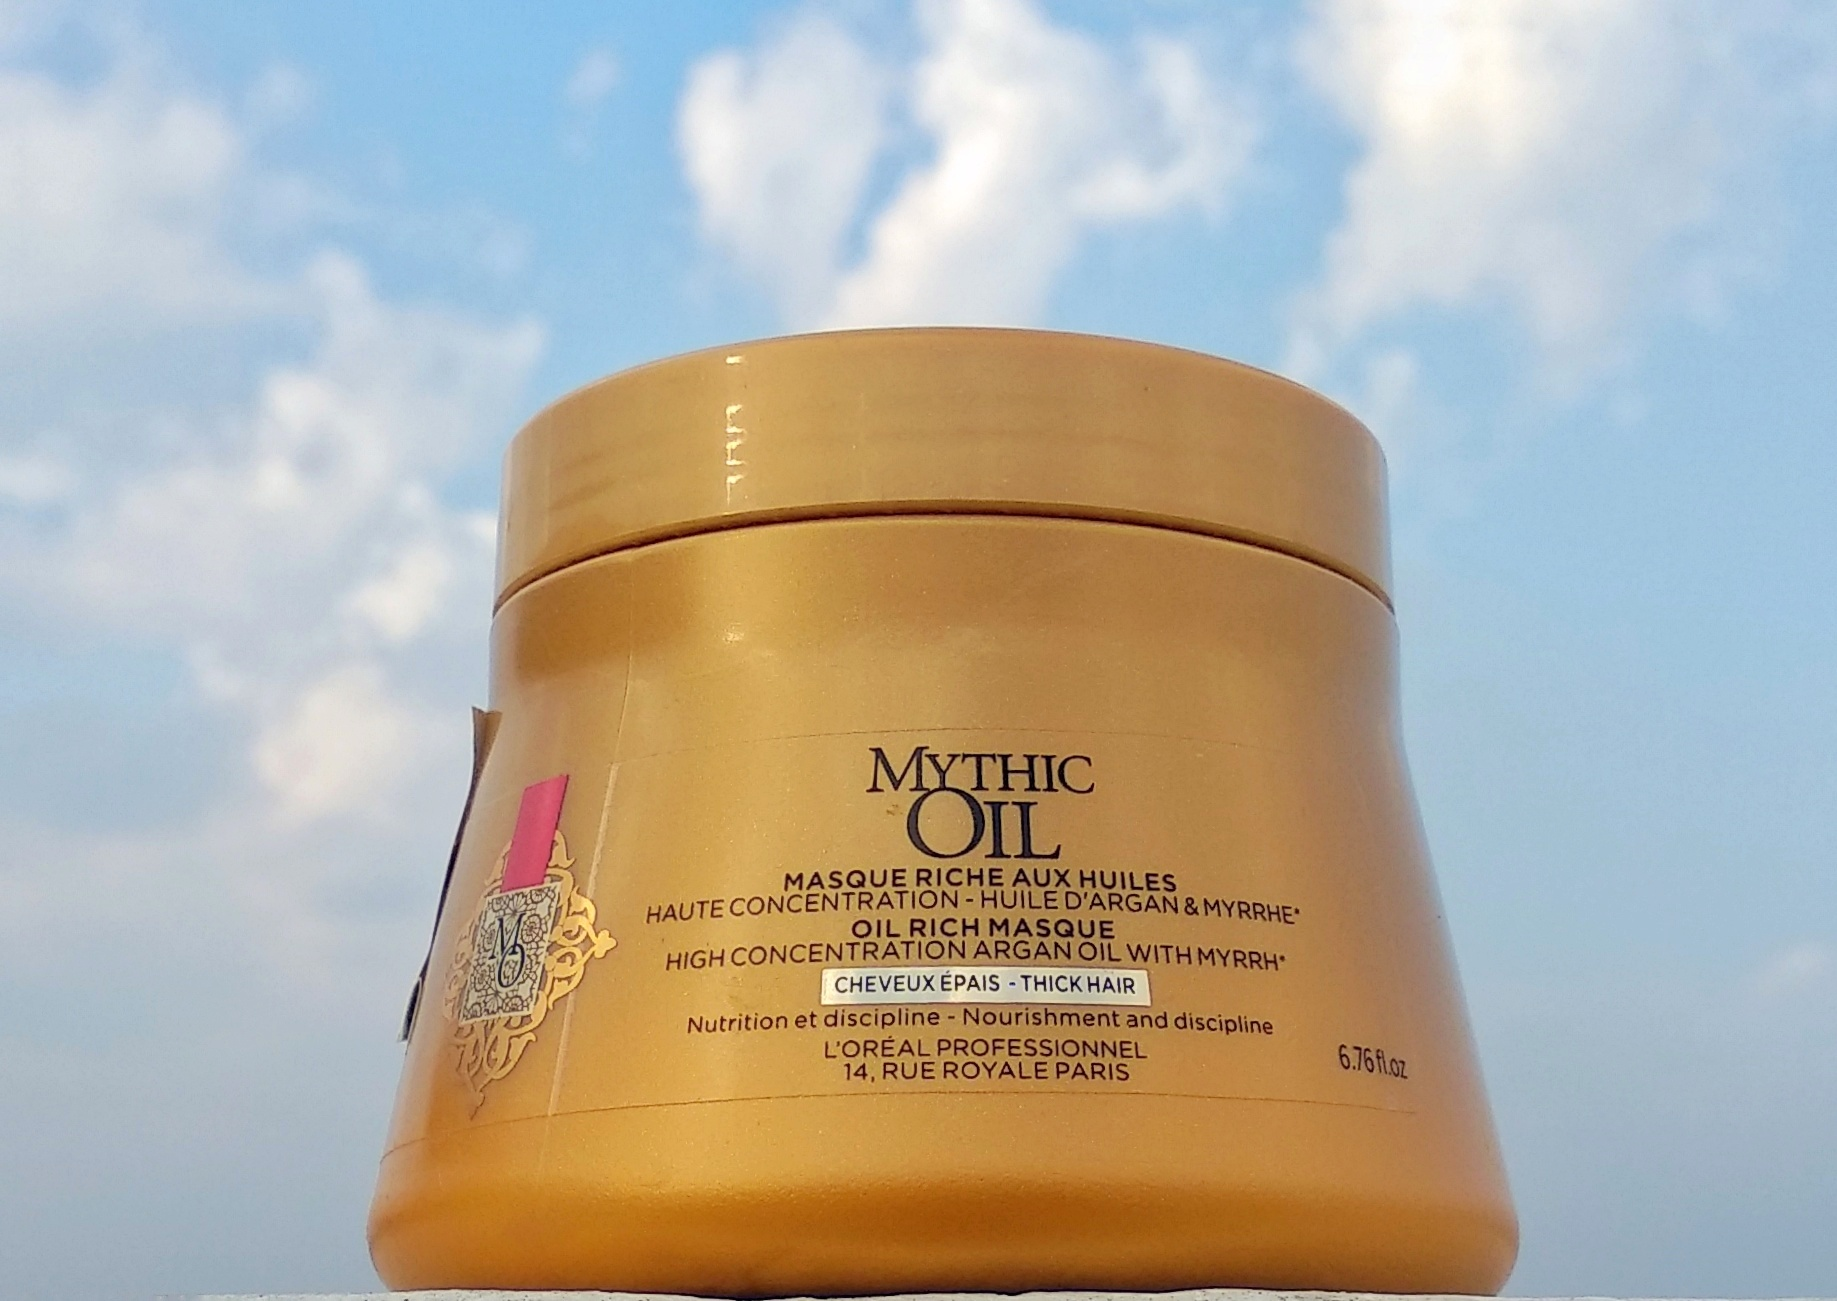 L'Oreal Professionnel Mythic Oil Masque Riche Aux Huiles Review